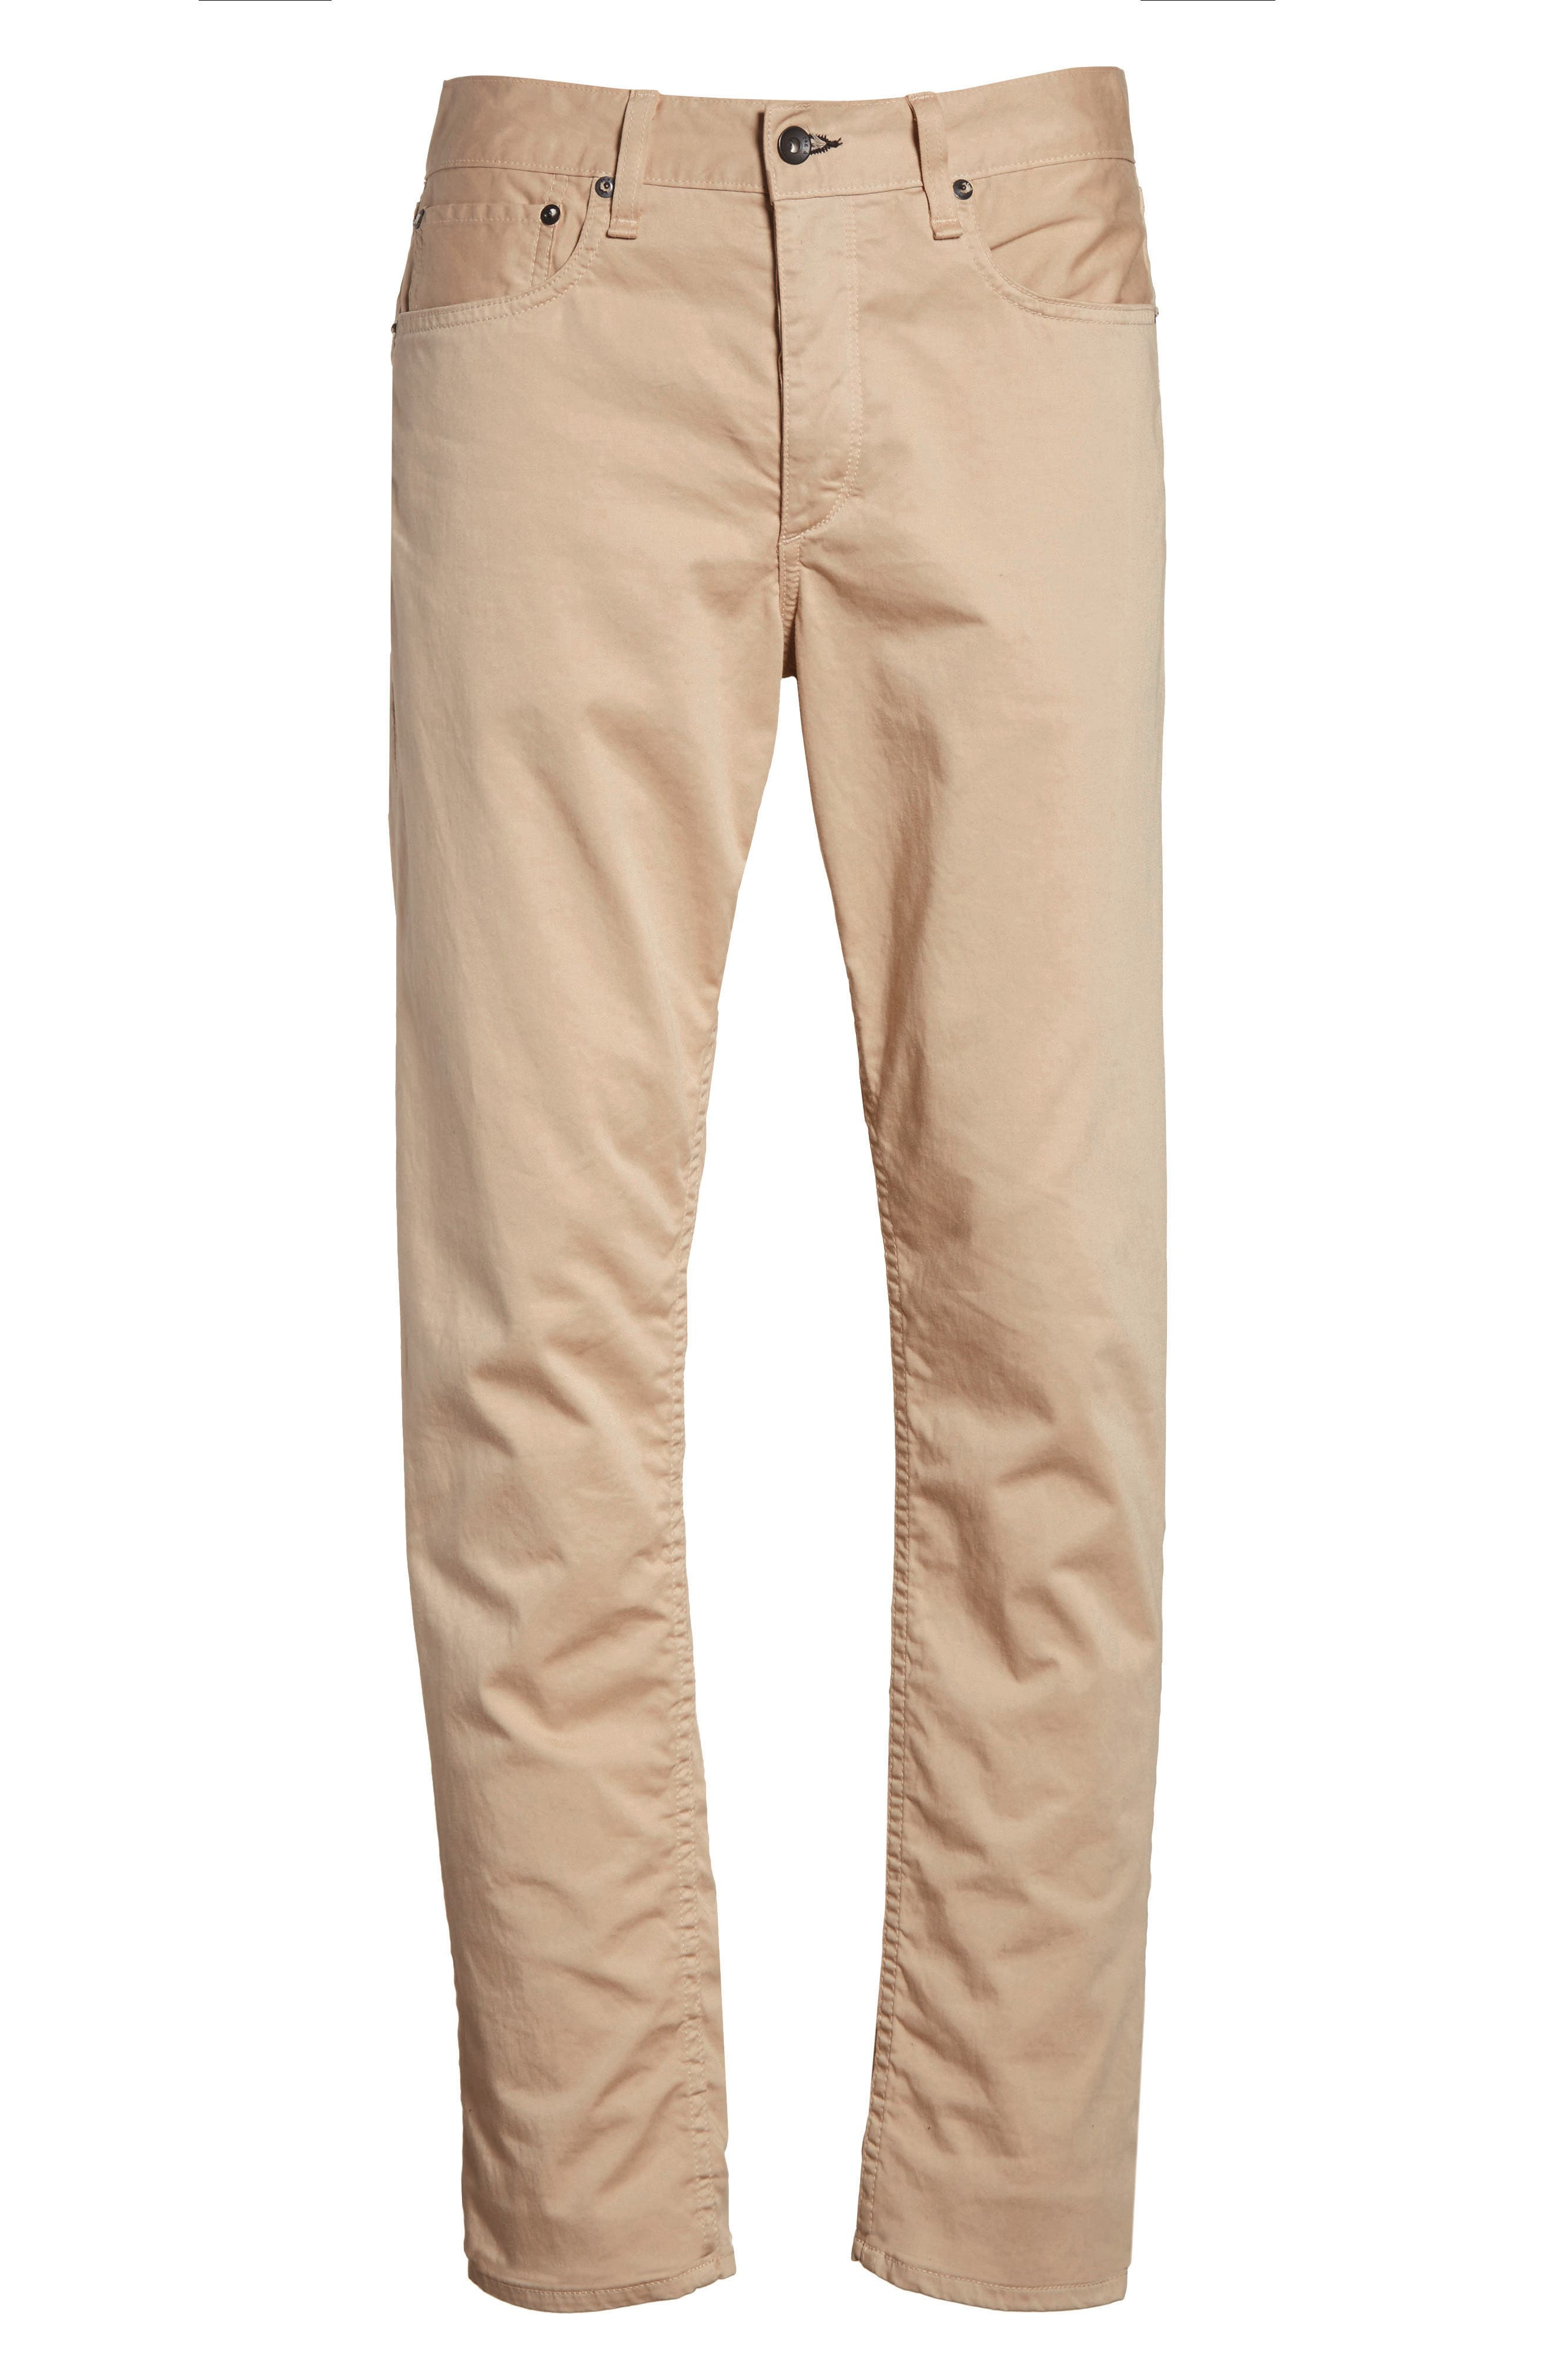 Fit 2 Five-Pocket Twill Pants,                             Alternate thumbnail 6, color,                             Beige